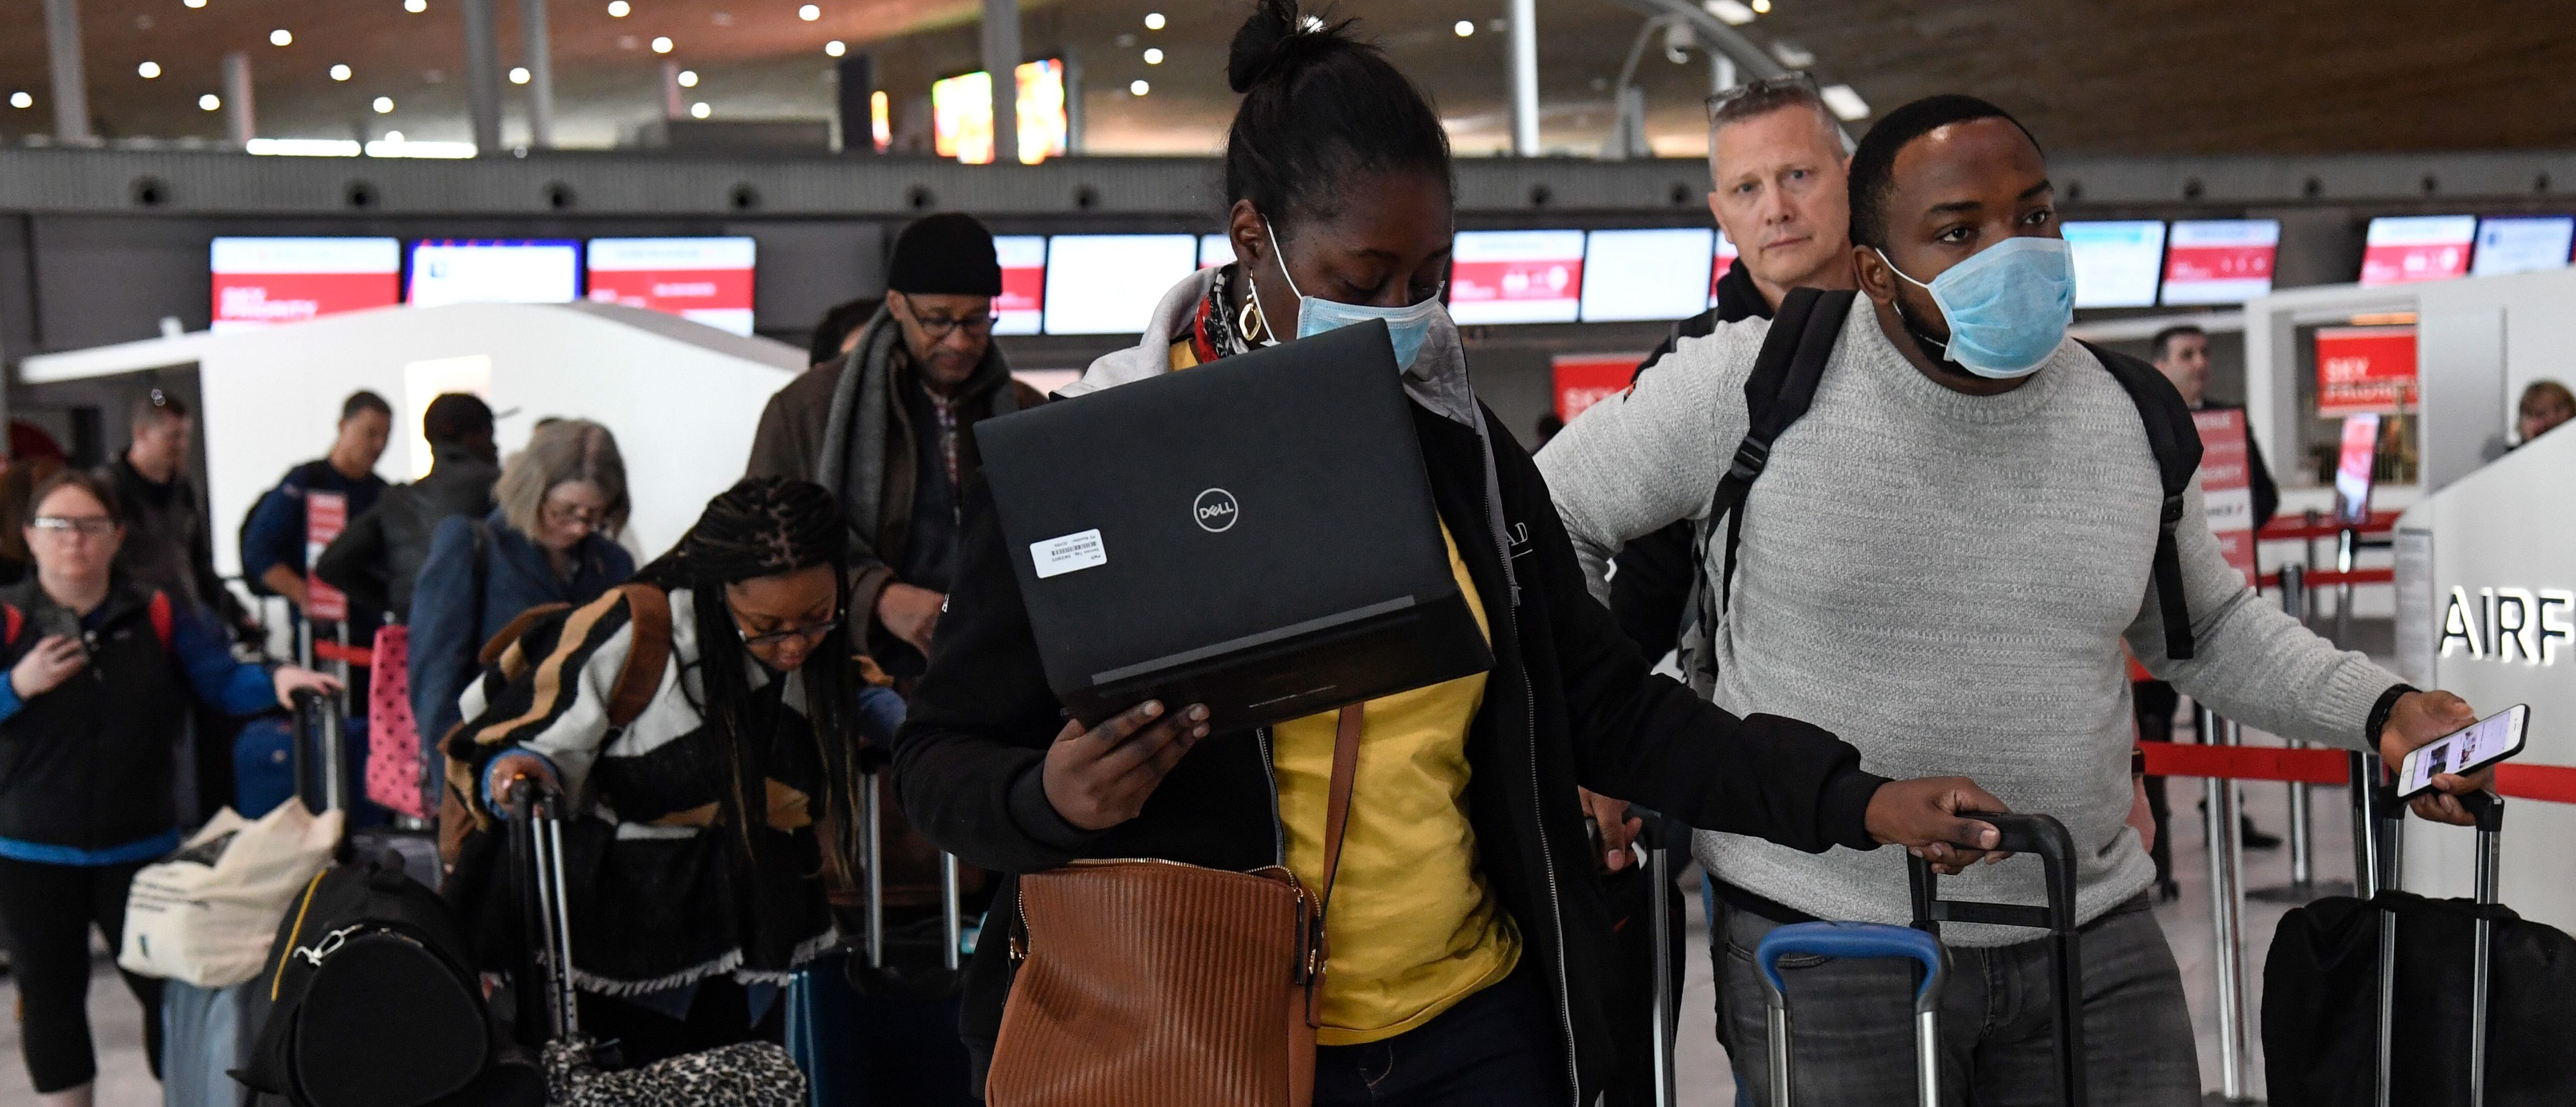 Travellers with protective face mask queue at an airport information desk at Paris-Charles-de-Gaulle airport after a US 30-day ban on travel from Europe due to the COVID-19 spread in Roissy-en-France on March 12, 2020. - US President Donald Trump announced on March 11, 2020 a shock 30-day ban on travel from mainland Europe over the coronavirus pandemic that has sparked unprecedented lockdowns, widespread panic and another financial market meltdown. (Photo by Bertrand GUAY / AFP) (Photo by BERTRAND GUAY/AFP via Getty Images)